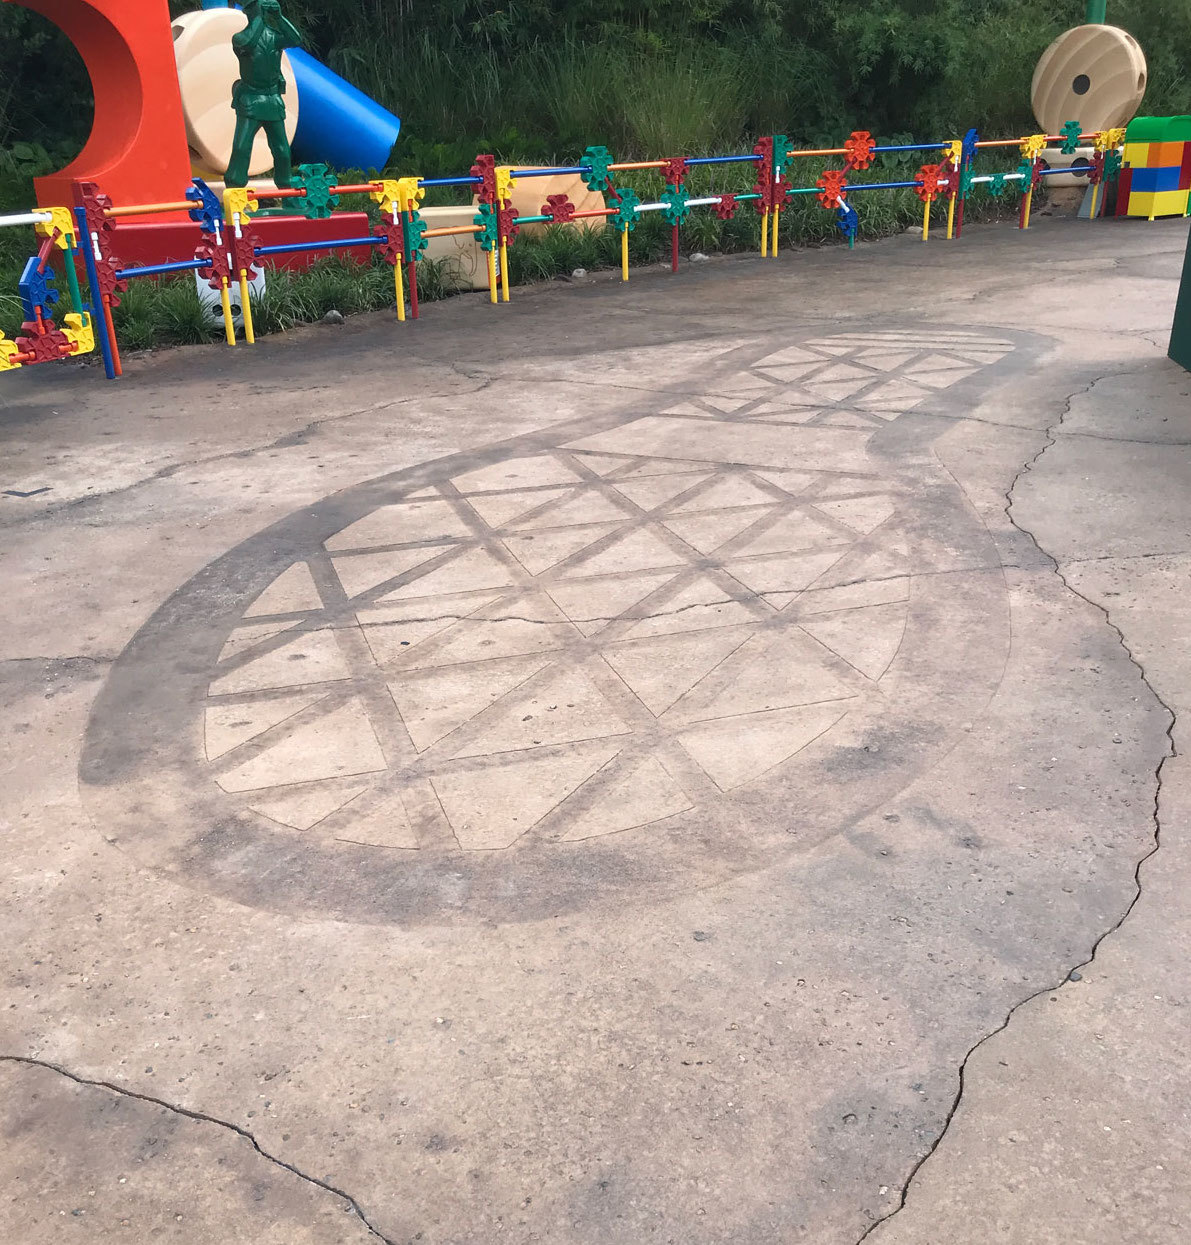 Andy's Footprint in Toy Story Land in Walt Disney World